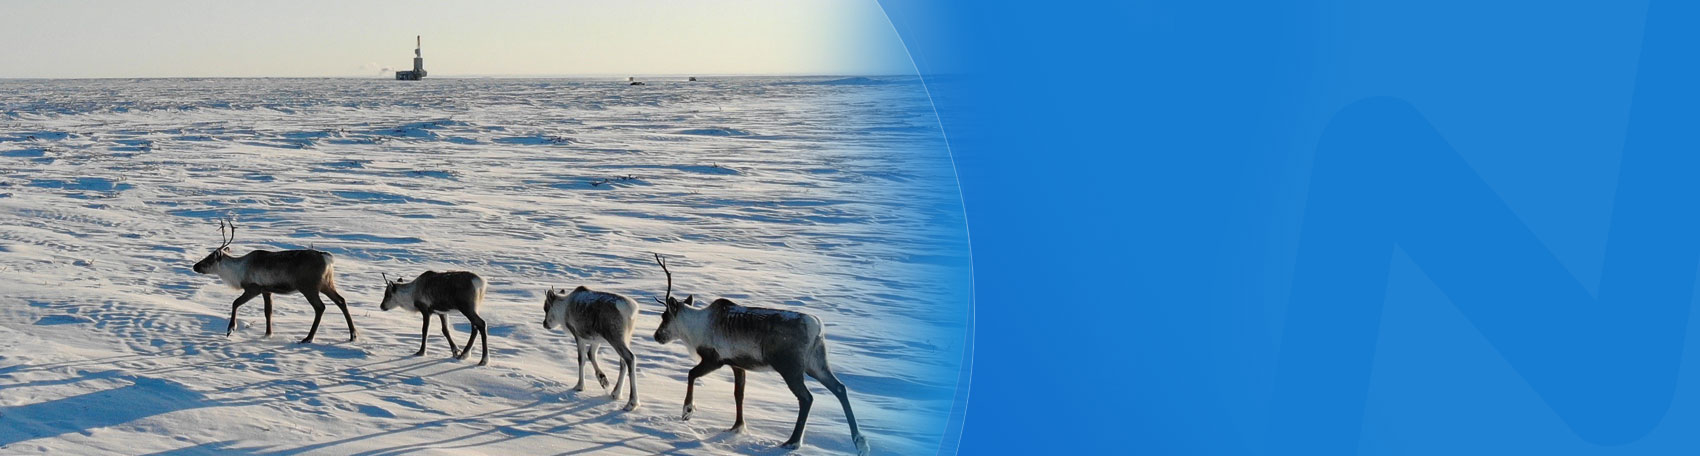 Caribou cross the snow with a rig in the background.